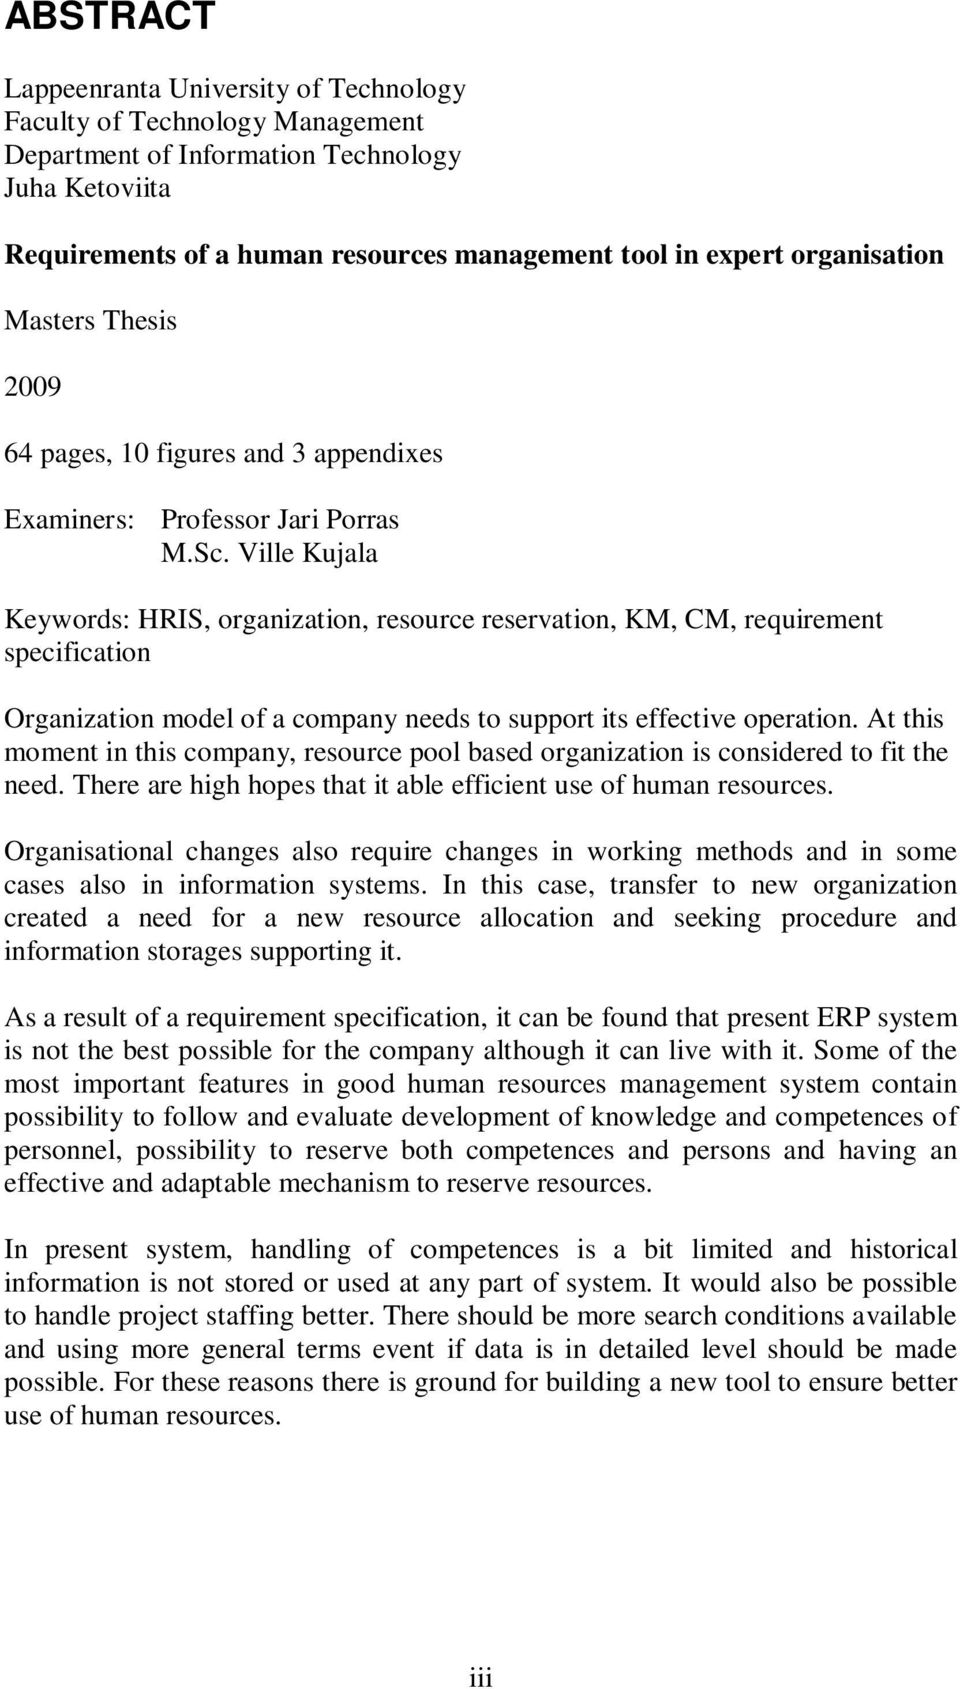 Ville Kujala Keywords: HRIS, organization, resource reservation, KM, CM, requirement specification Organization model of a company needs to support its effective operation.